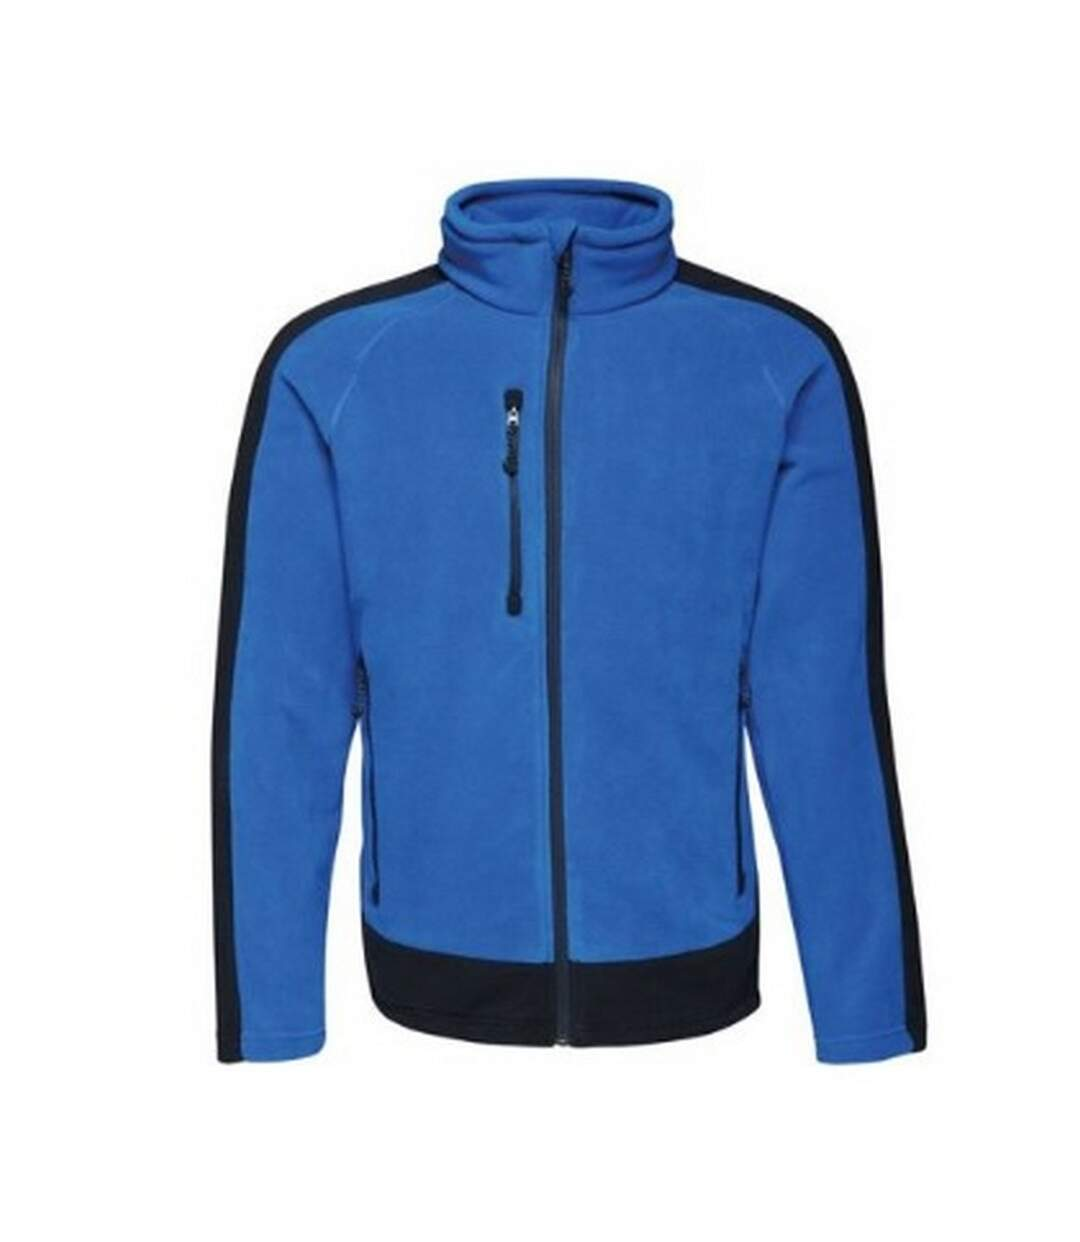 Regatta Mens Contrast Fleece Jacket (New Royal/Navy) - UTRG3568